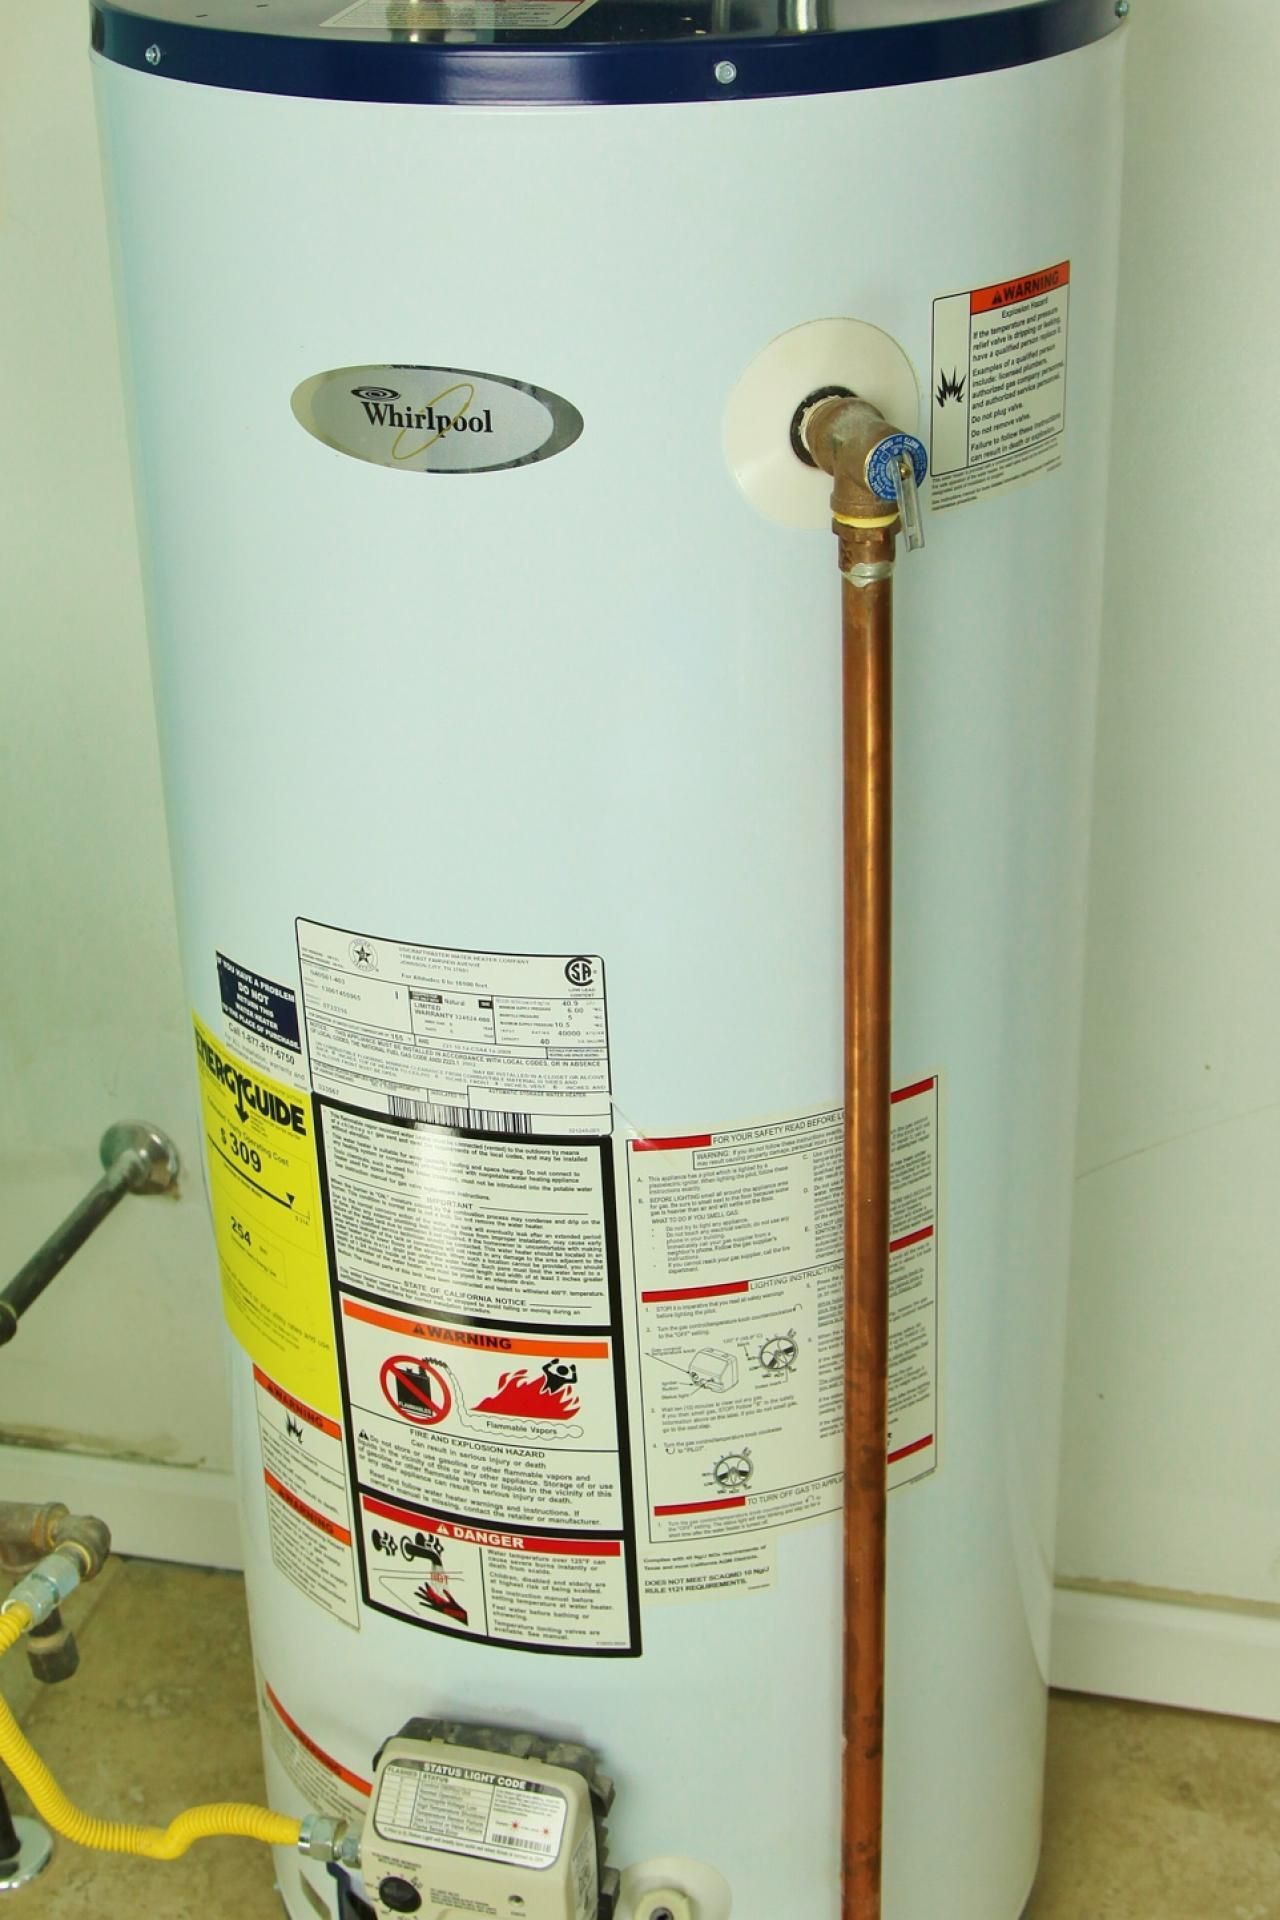 Diy Network Has Instructions On How To Drain Your Hot Water Heater